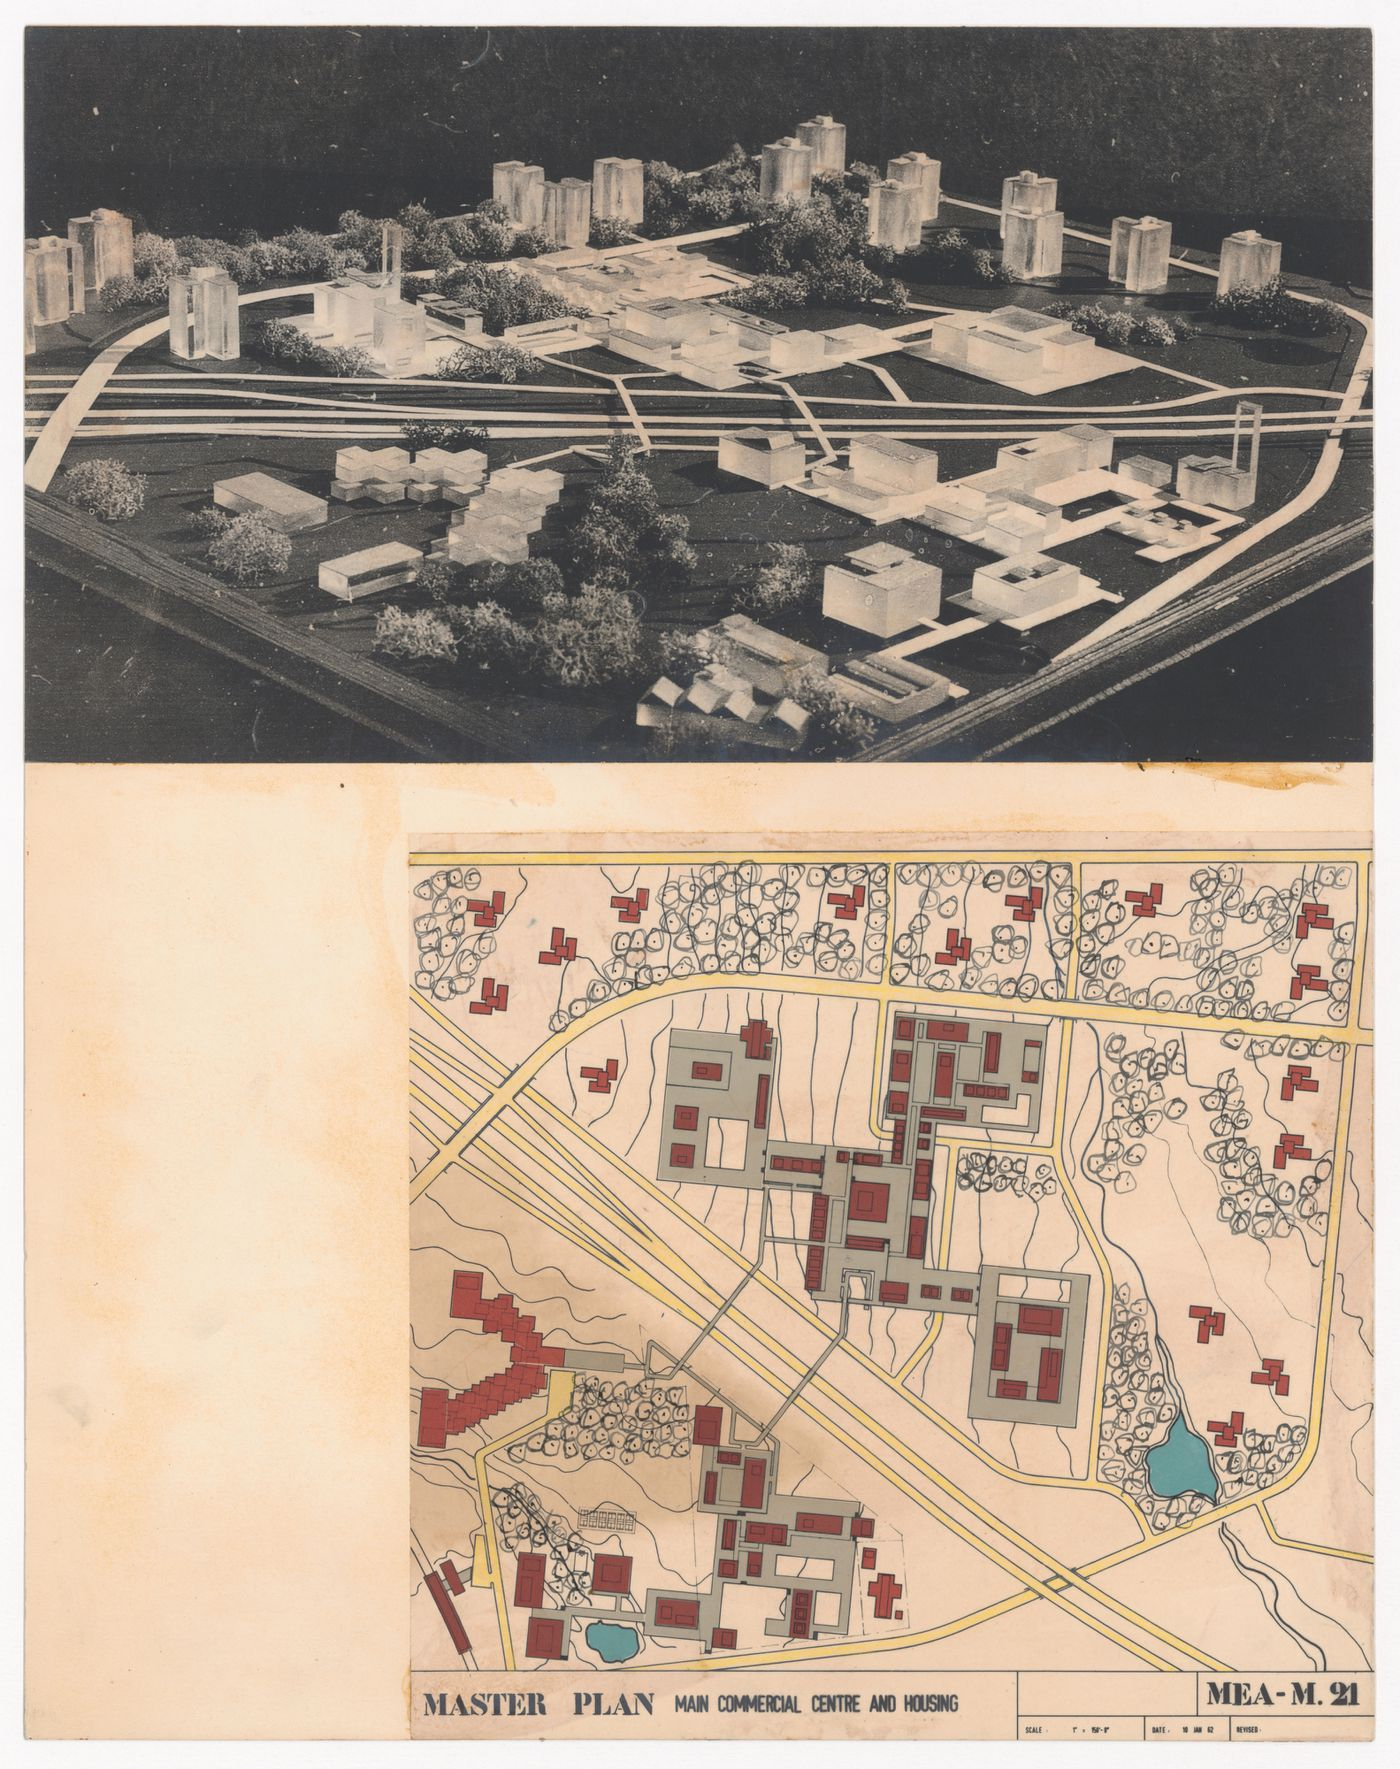 Presentation view of model and site plan for Meadowvale, Mississauga, Ontario, Canada